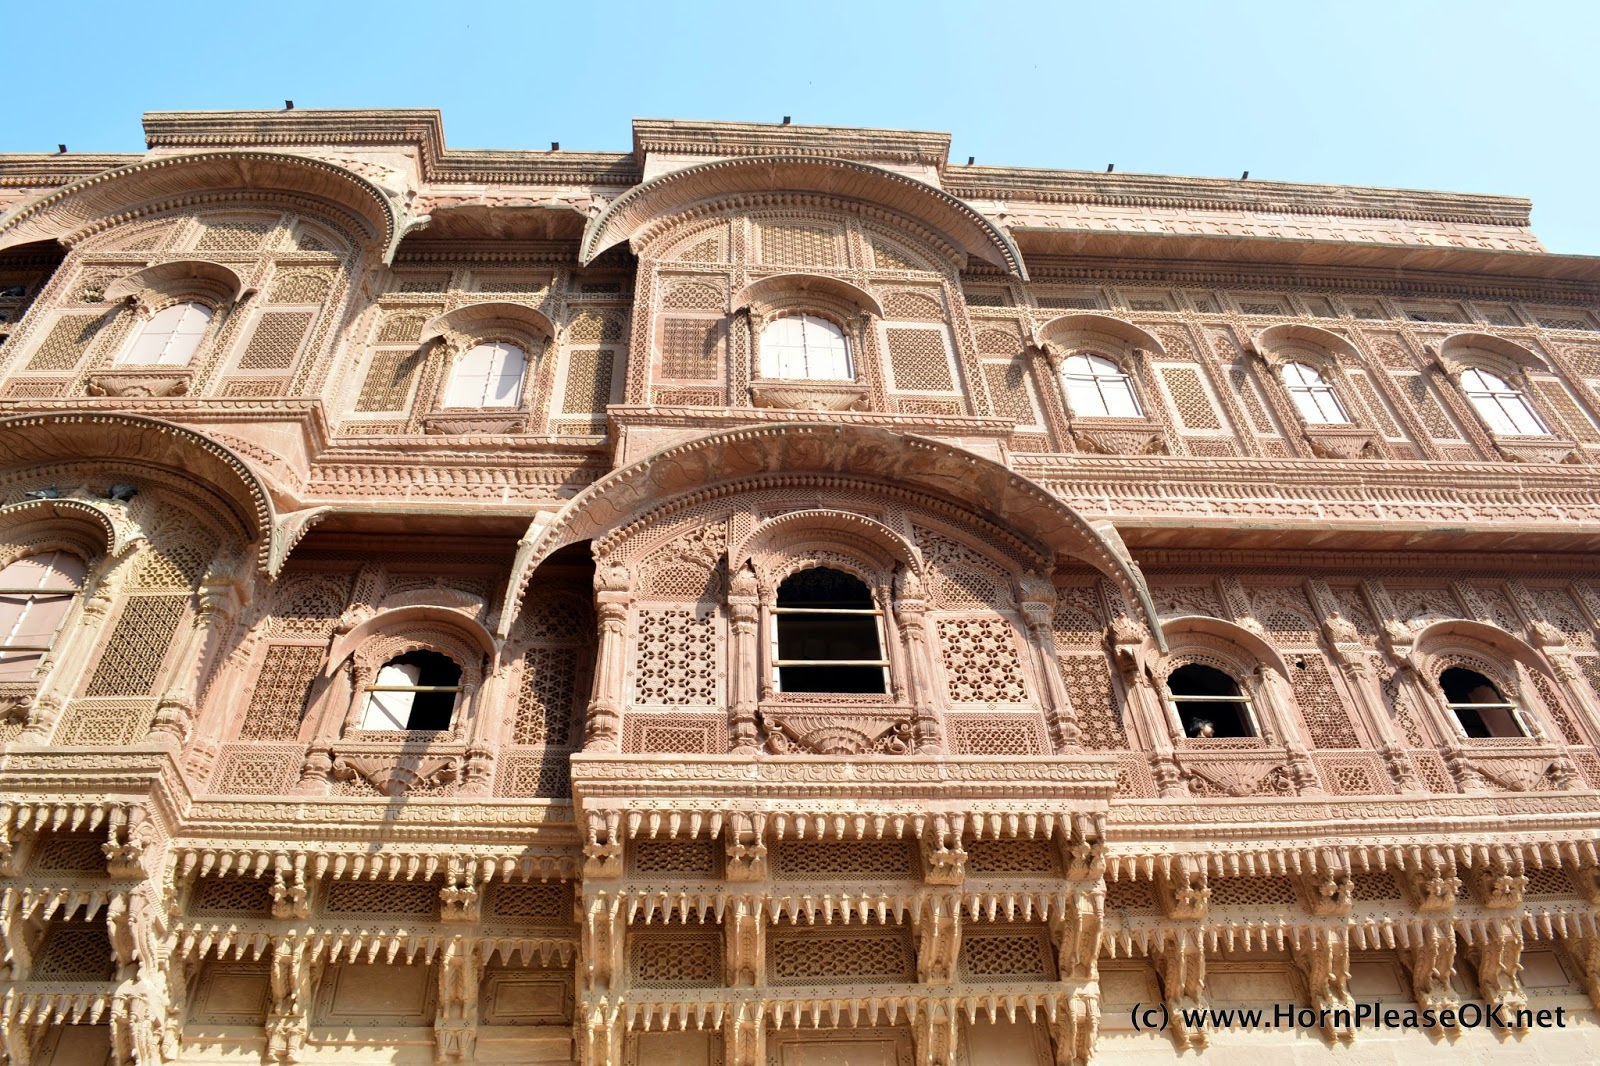 Carved windows of the palaces within Mehrangarh Fort